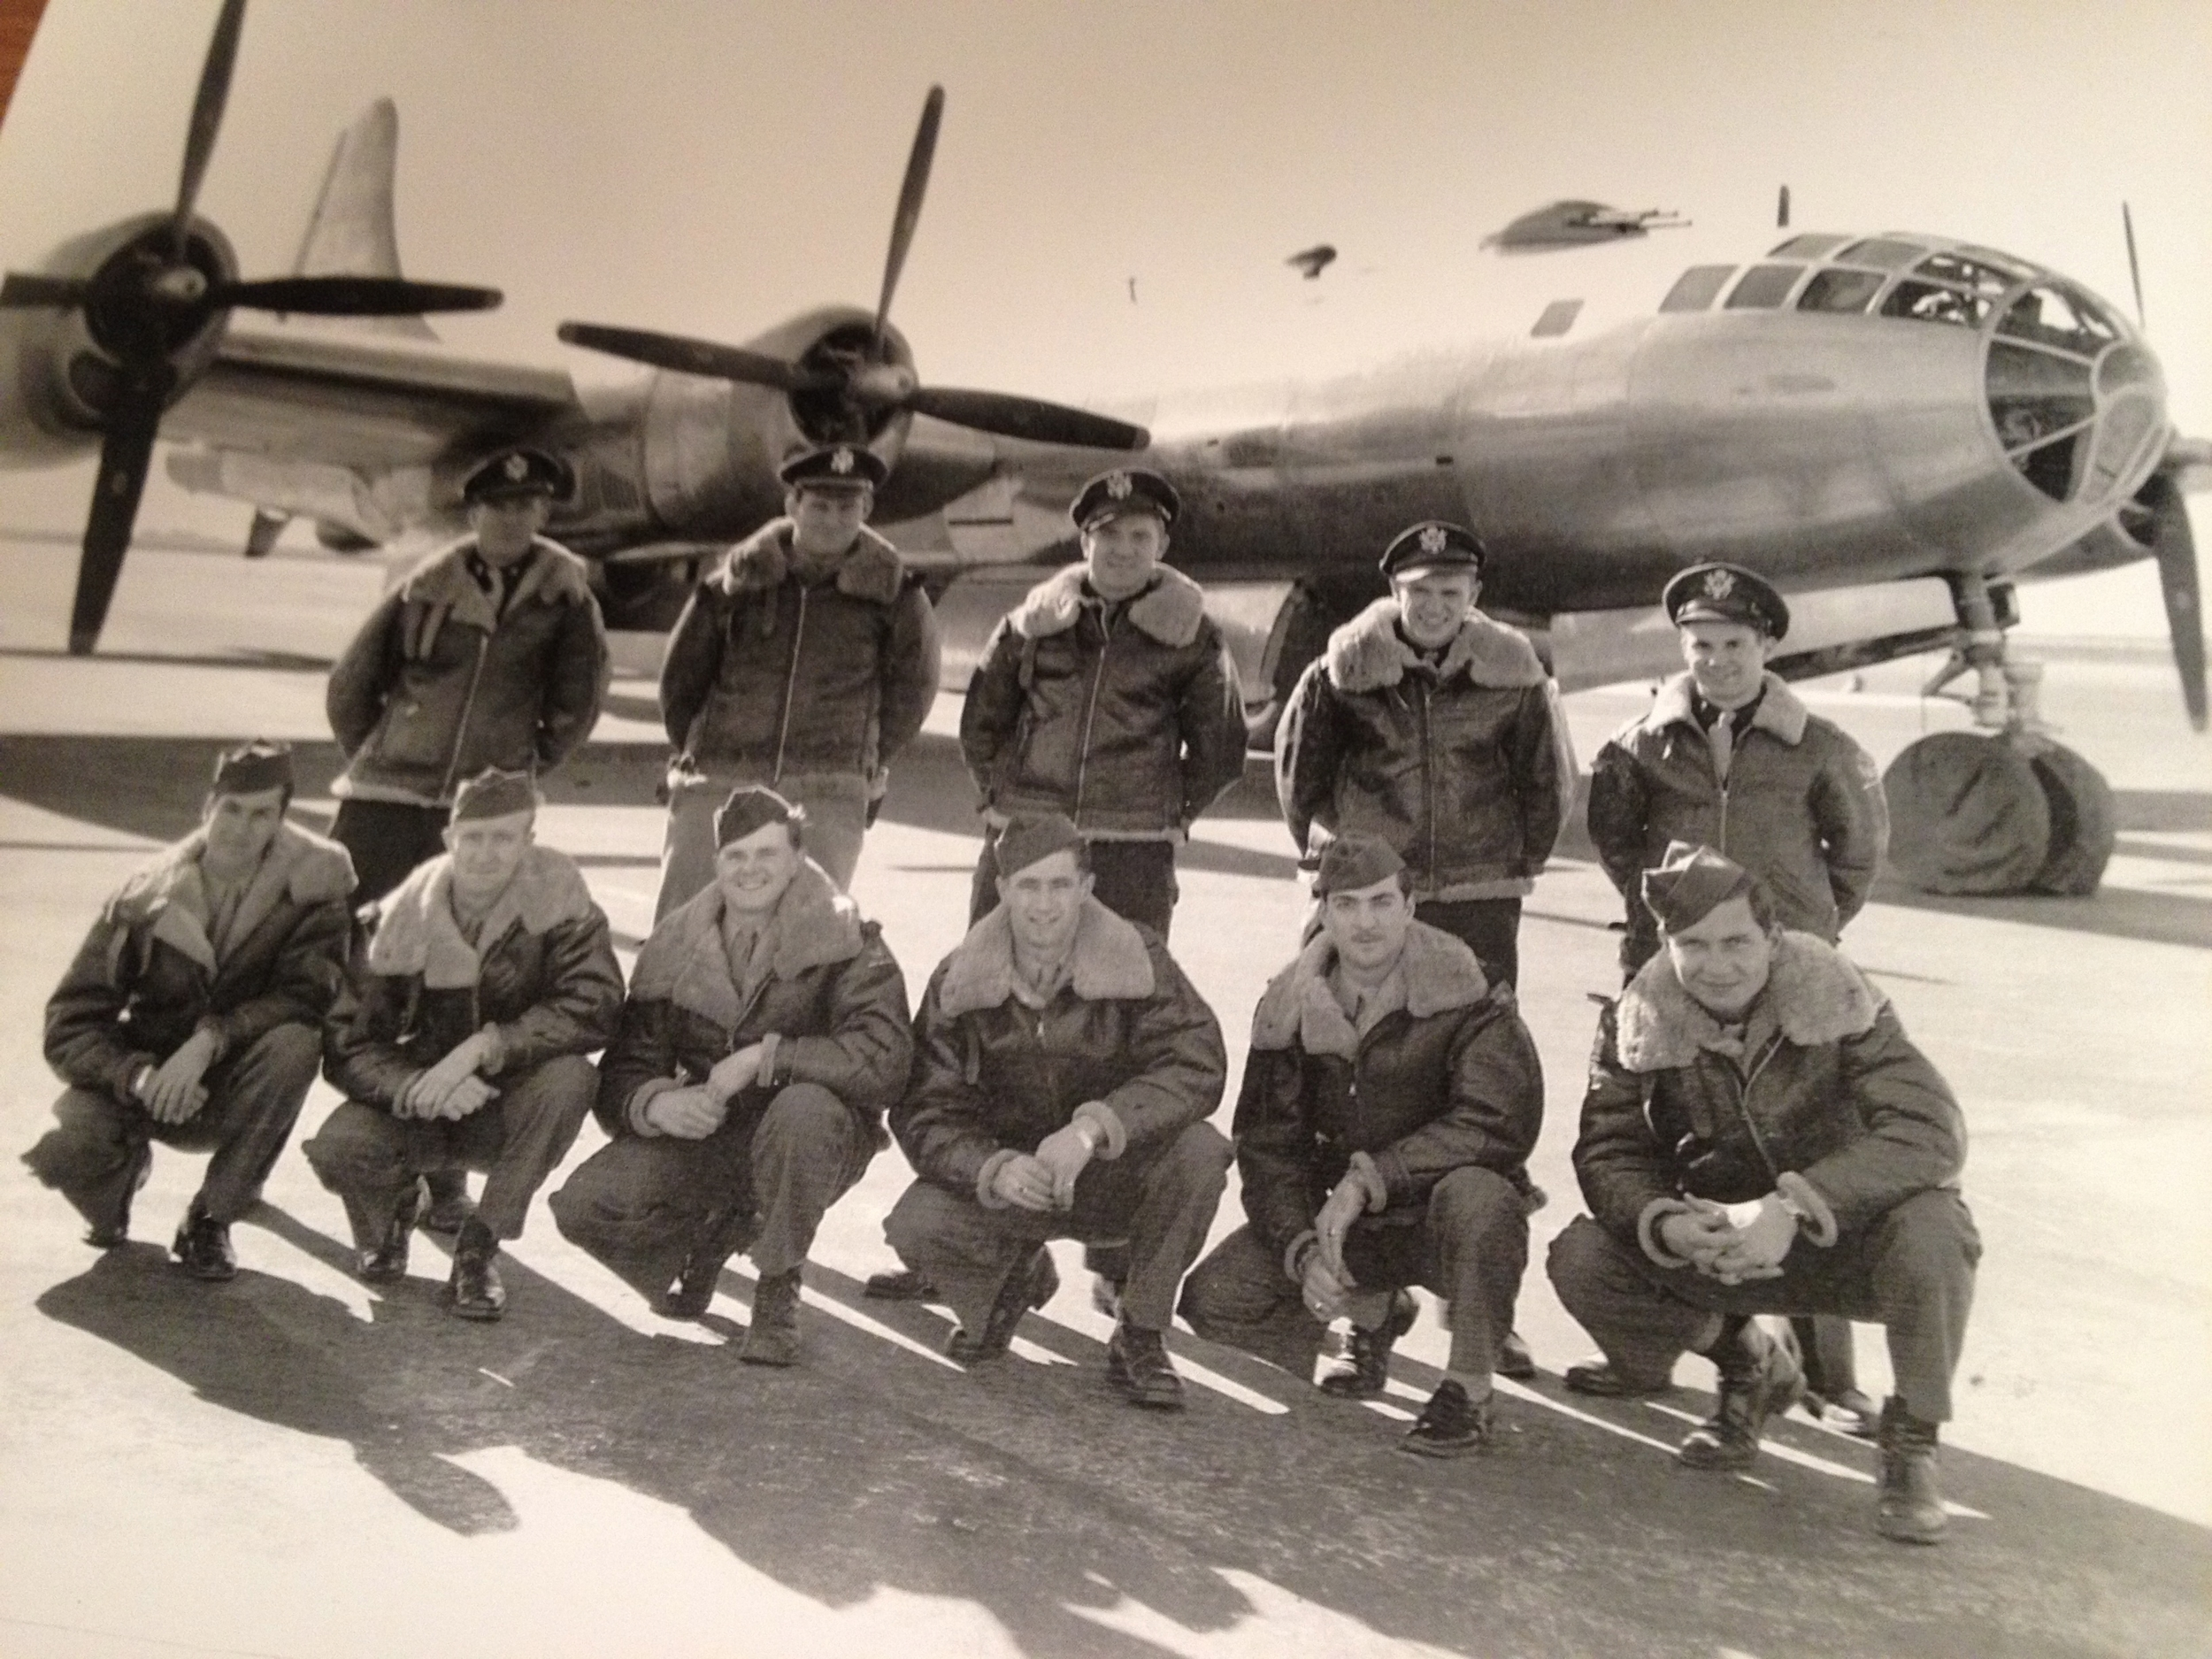 STAFF SERGEANT EDWIN HOLOPAINEN, THIRD FROM LEFT, BOTTOM ROW, WITH HIS FELLOW B-29 SUPERFORTRESS CREWMEMBERS.